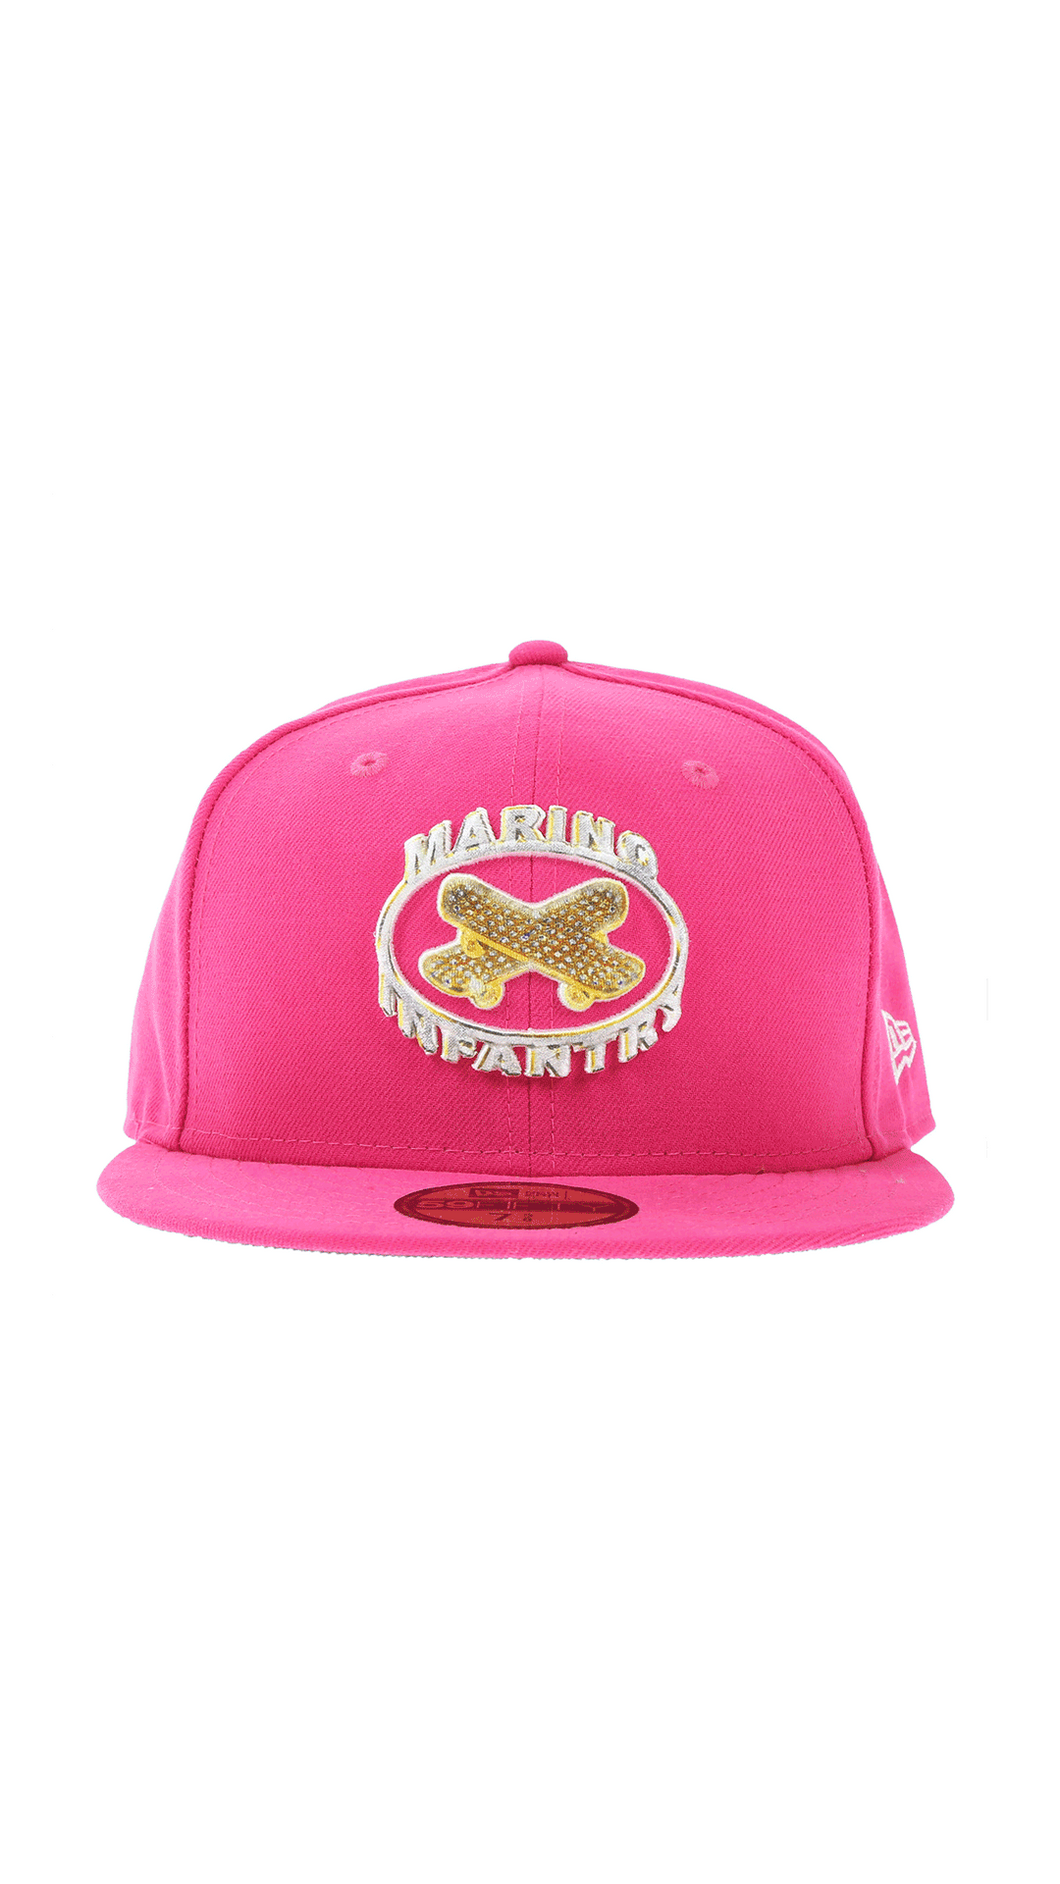 Marino Infantry x New Era Fitted (Pink)